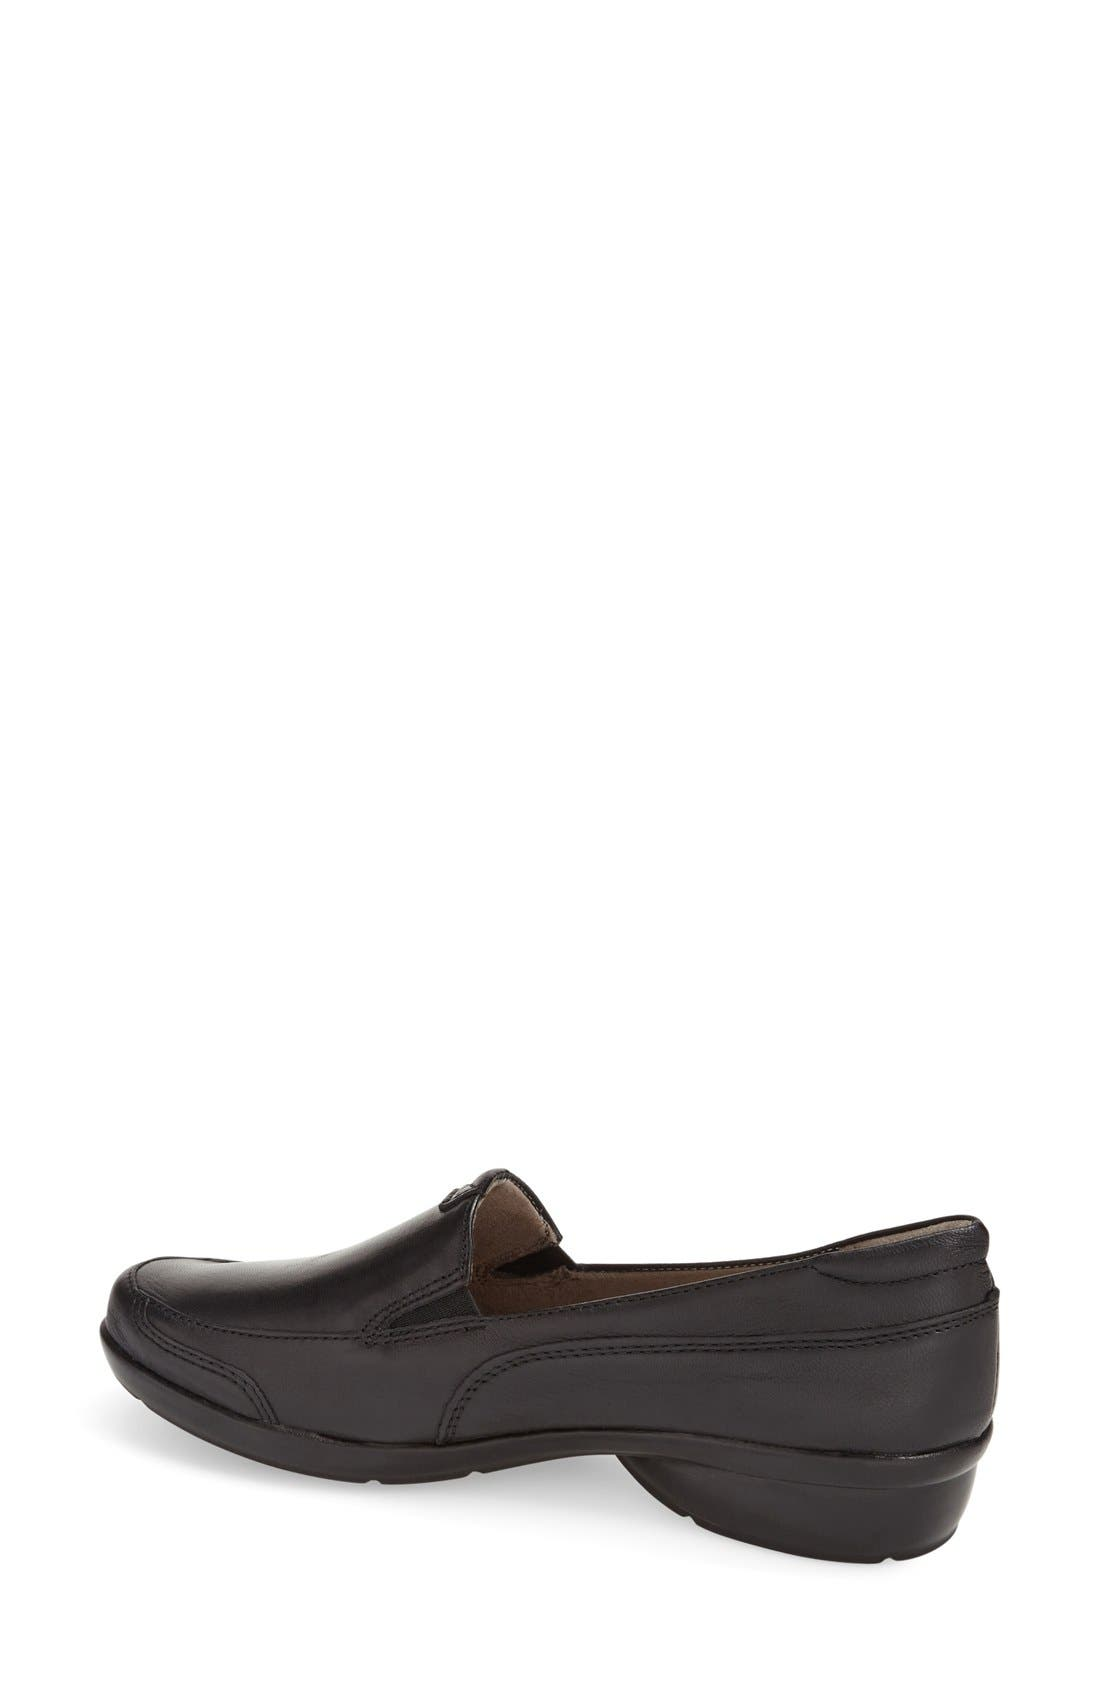 Alternate Image 2  - Naturalizer 'Channing' Loafer (Women)